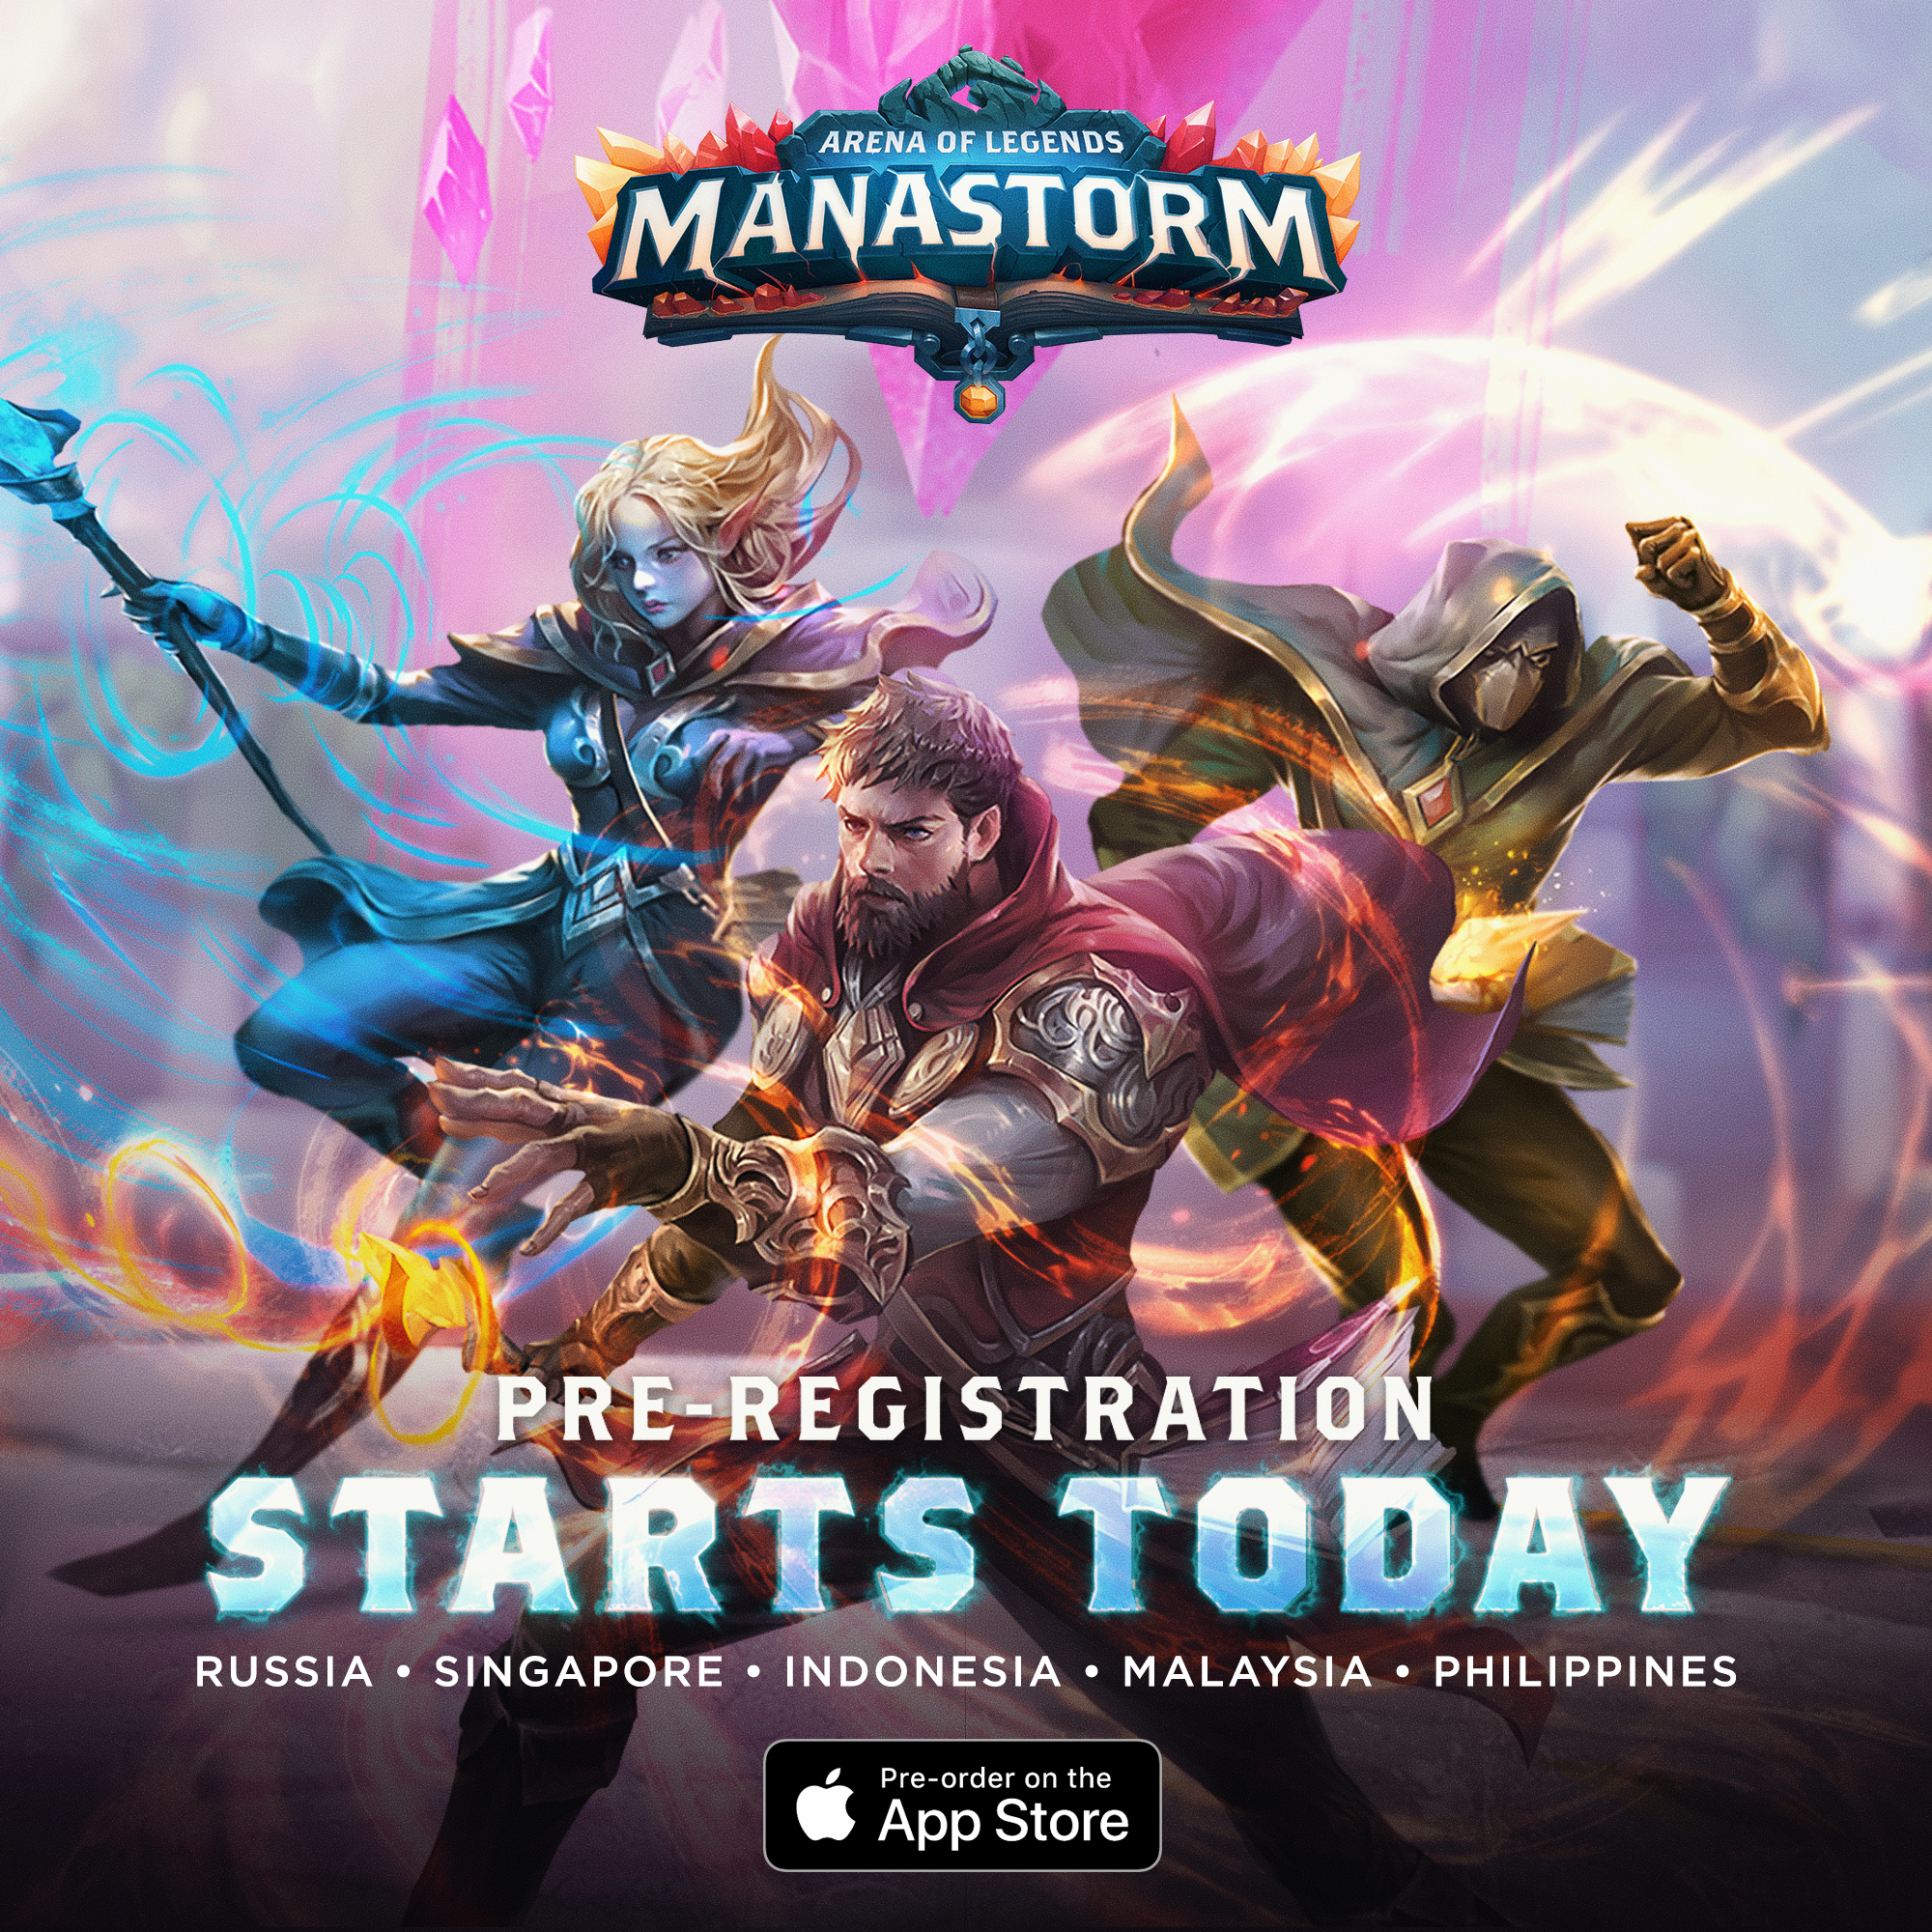 Pre-registration for Manastorm: Arena of Legends starts today!